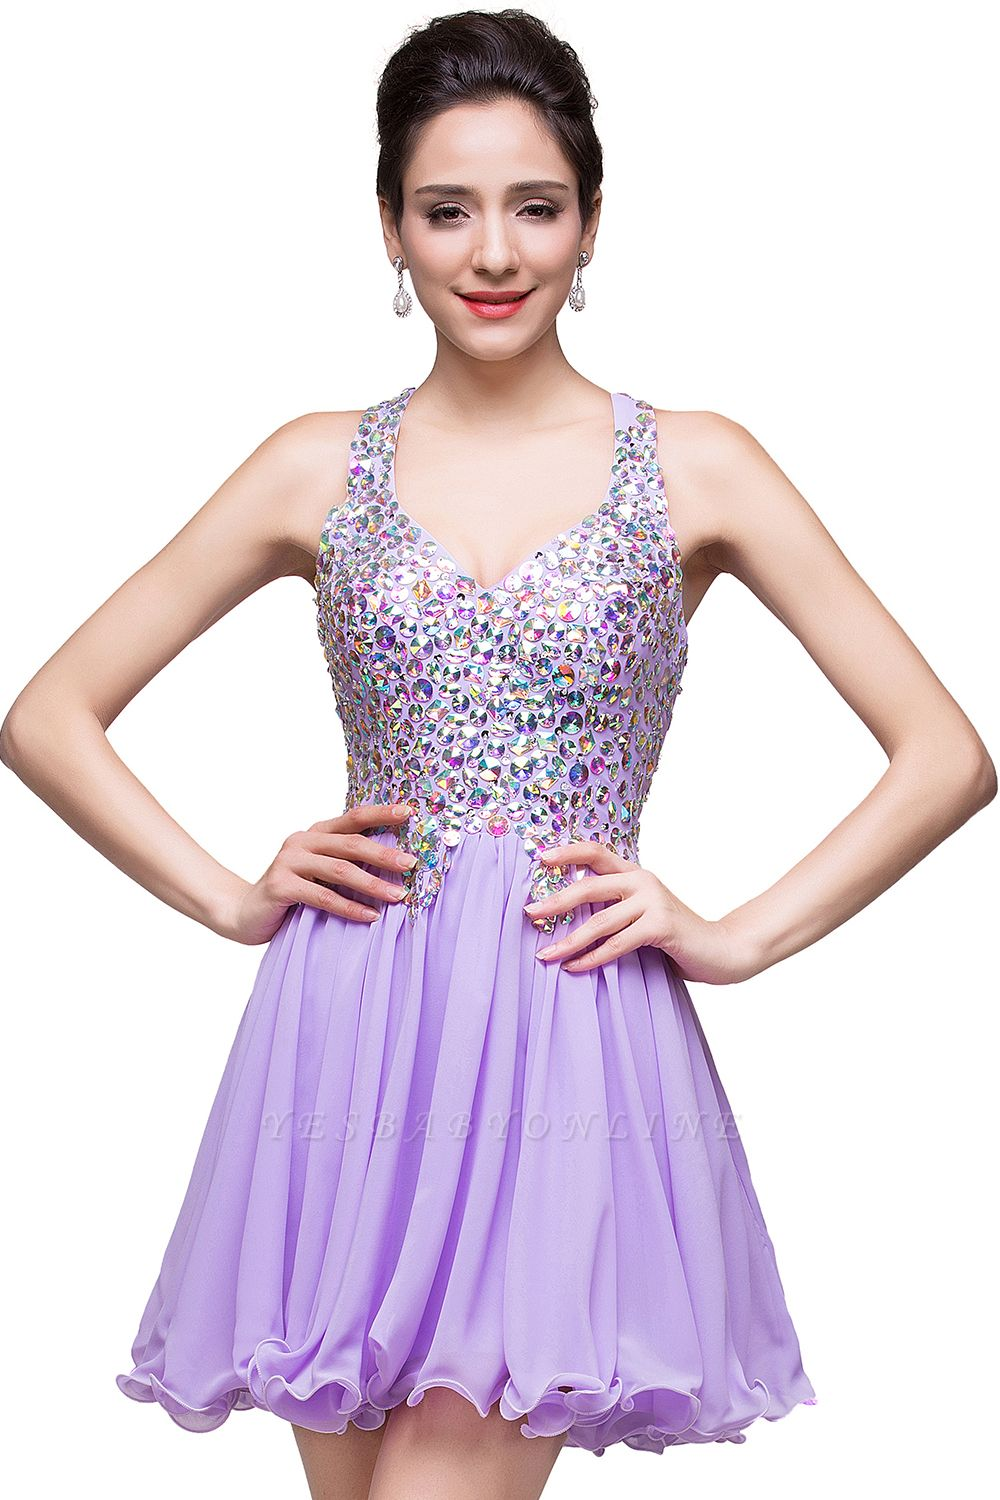 ELIANNA | A-line Short Sleeveless Sweetheart Chiffon Prom Dresses with Crystal Beads